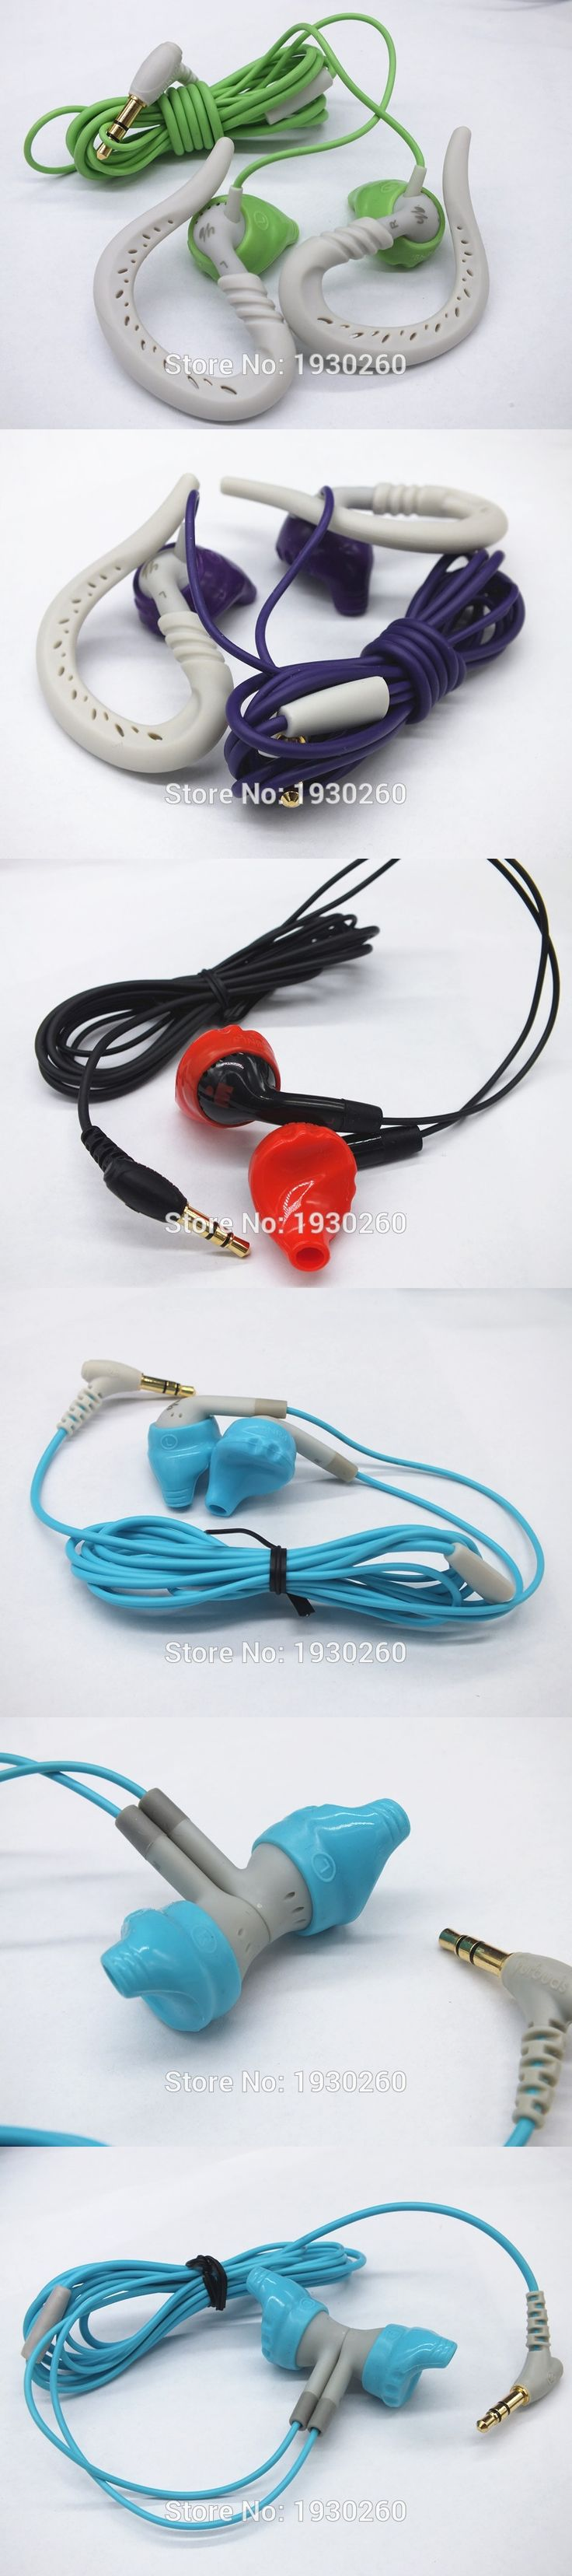 87 best Portable Audio & Video images on Pinterest | Alibaba group ...